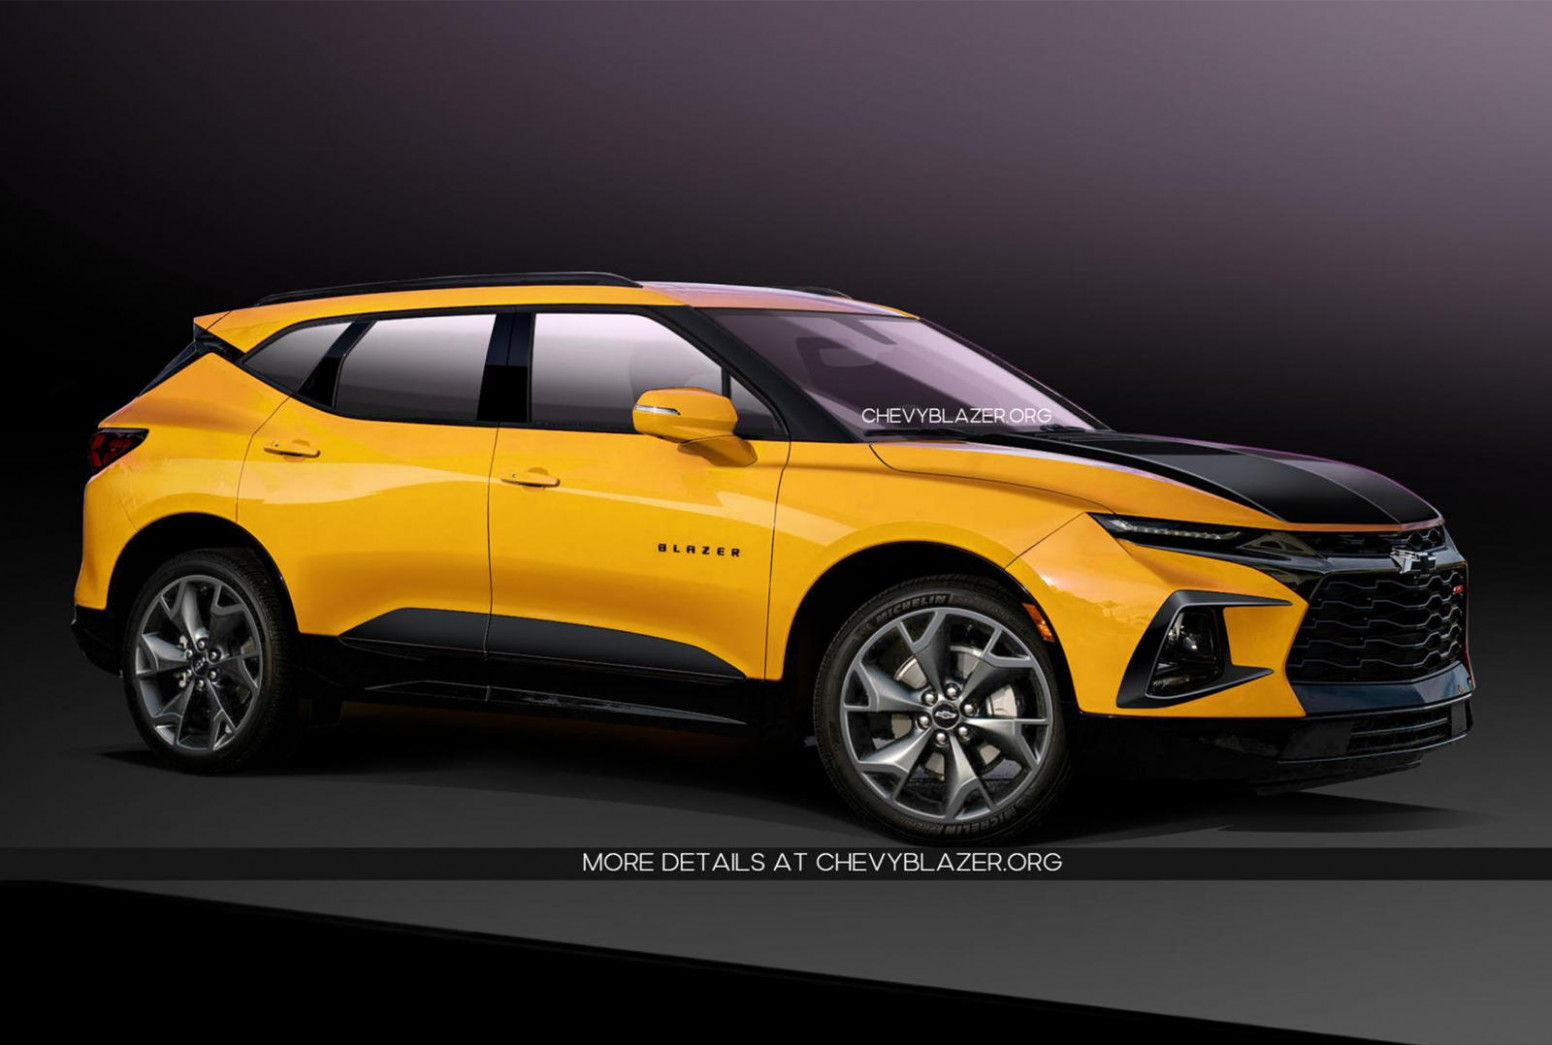 Redesign and Concept 2022 The Chevy Blazer